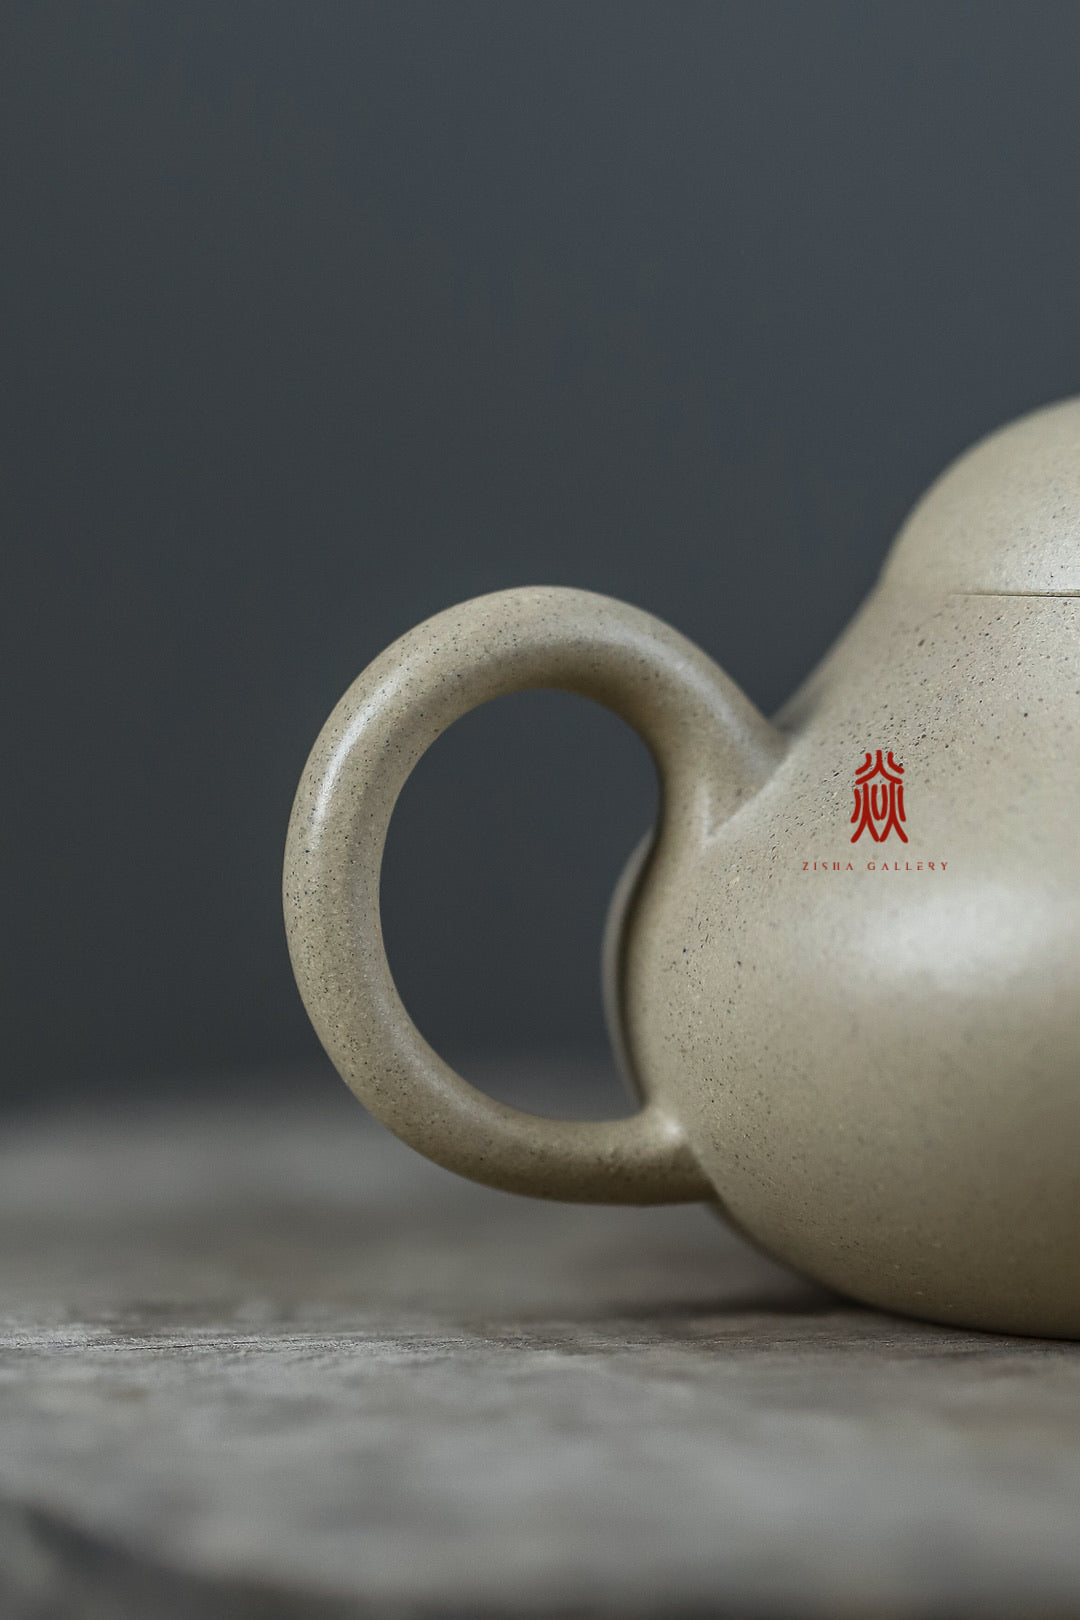 梨形 Pear 本山绿 Ben Shan Lüni 金林传砂 Jin Lin Chuan Sha 160ml - Yann Art Gallery